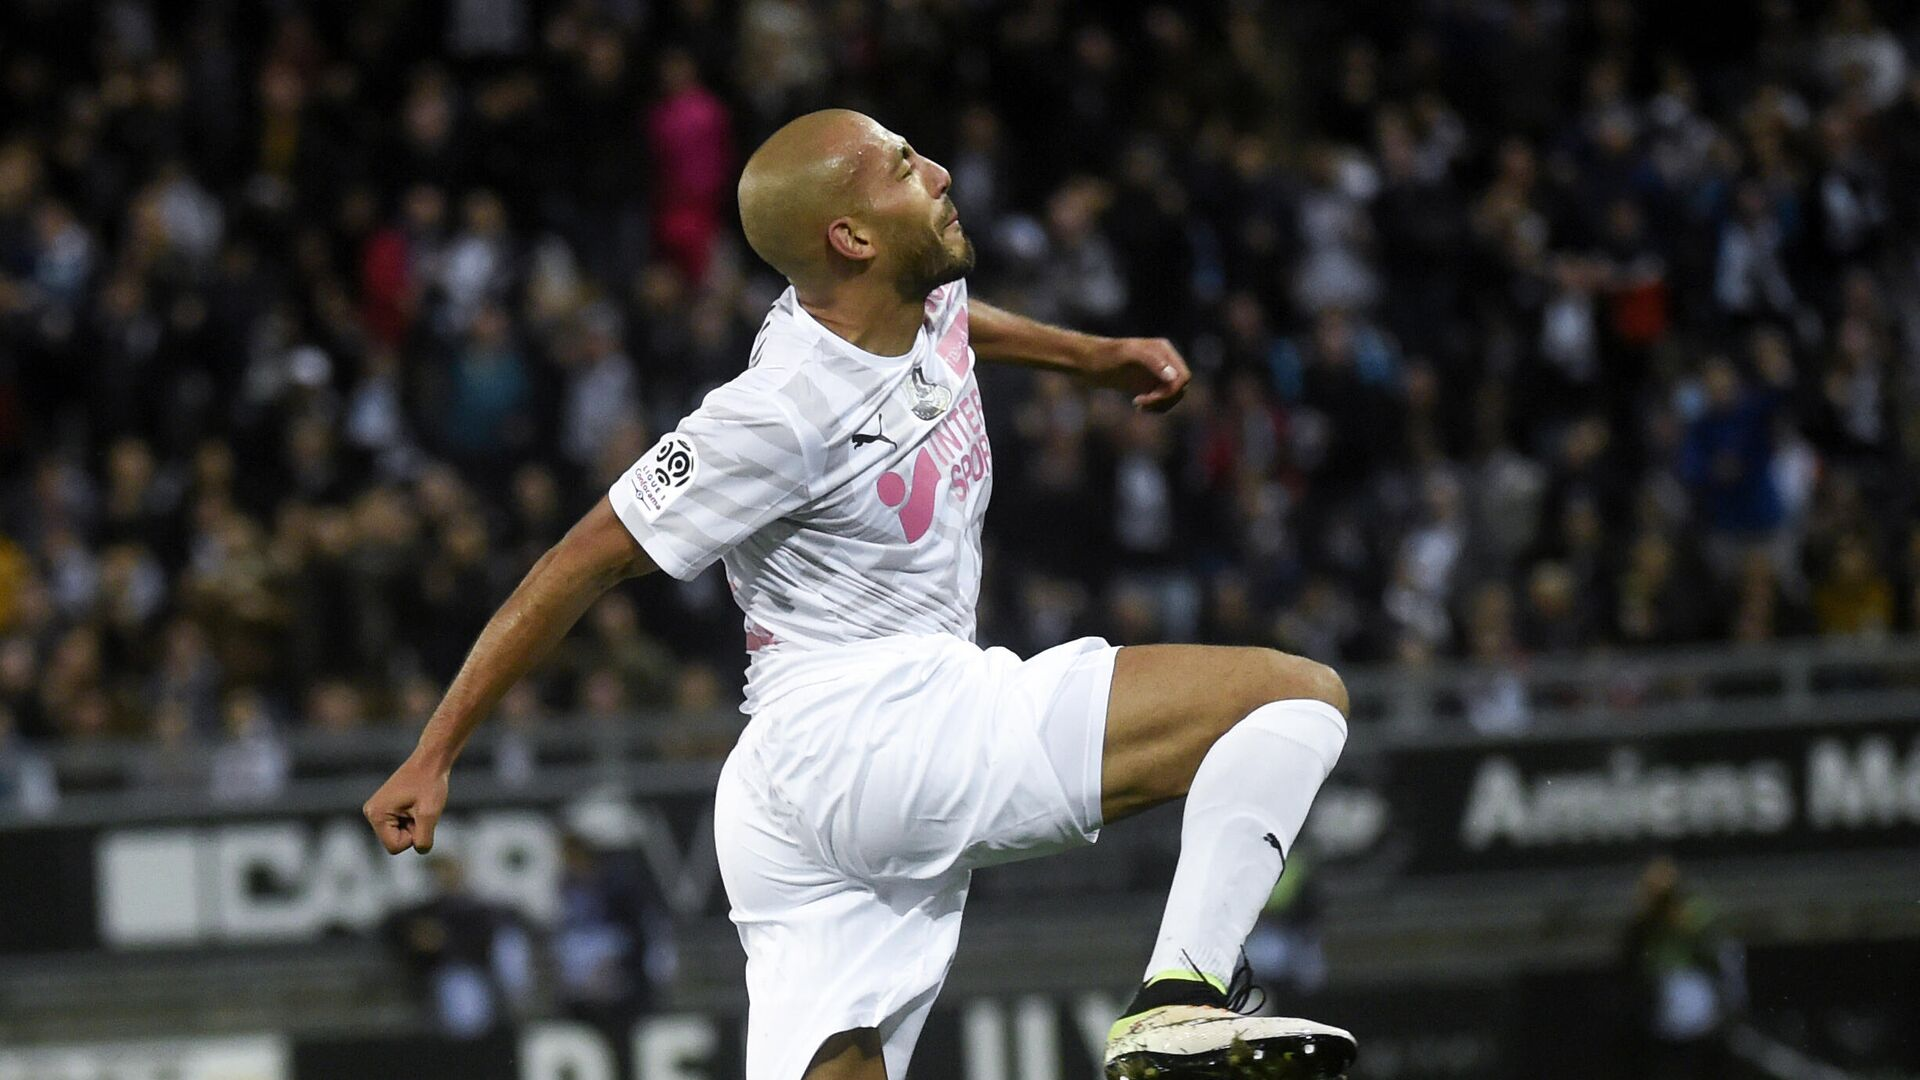 Amiens' Norwegian defender Haitam Aleesami celebrates after scoring a goal during the French L1 football match between SC Amiens and Olympique de Marseille (OM) on October 4, 2019 at the Licorne Stadium in Amiens. (Photo by FRANCOIS LO PRESTI / AFP) - РИА Новости, 1920, 17.10.2020